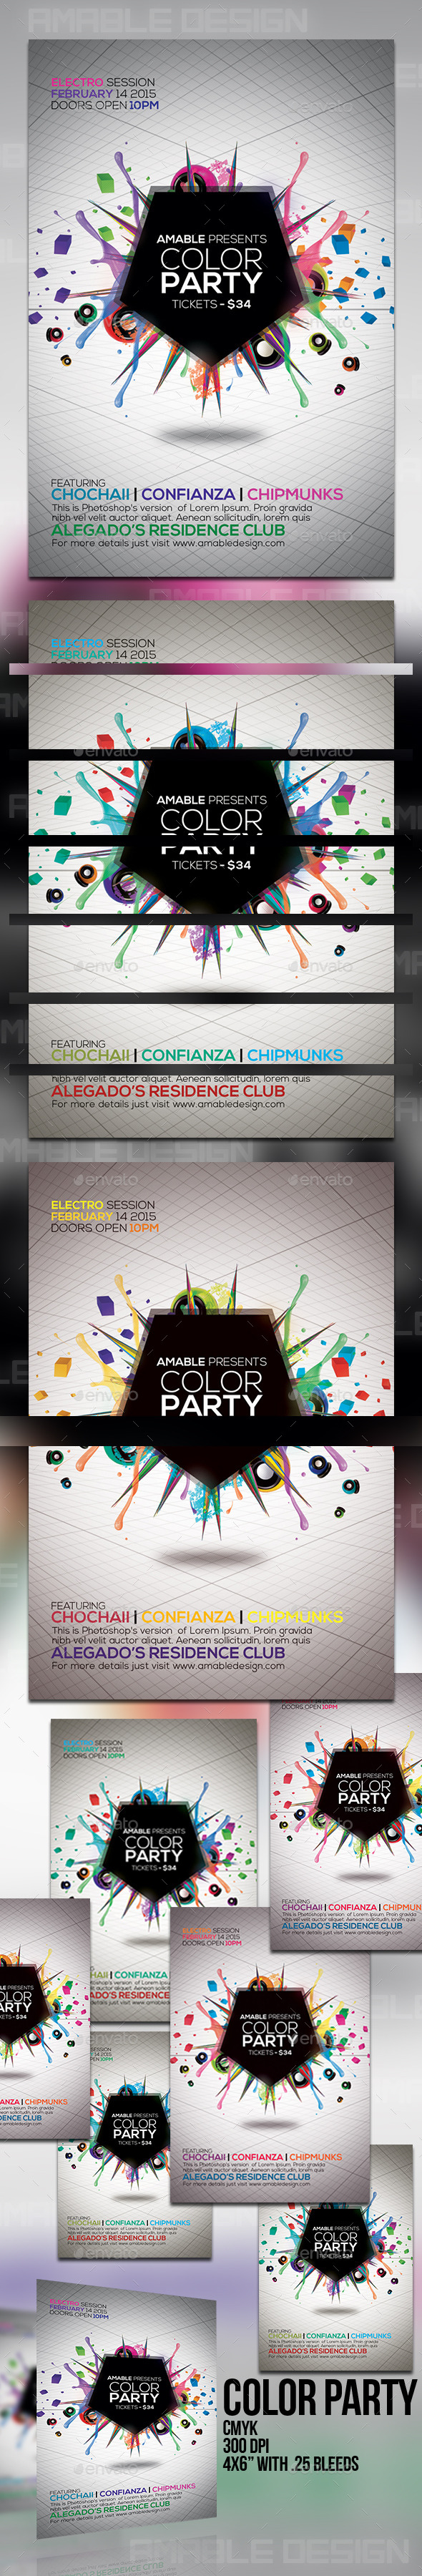 GraphicRiver Color Party Flyer 10337033